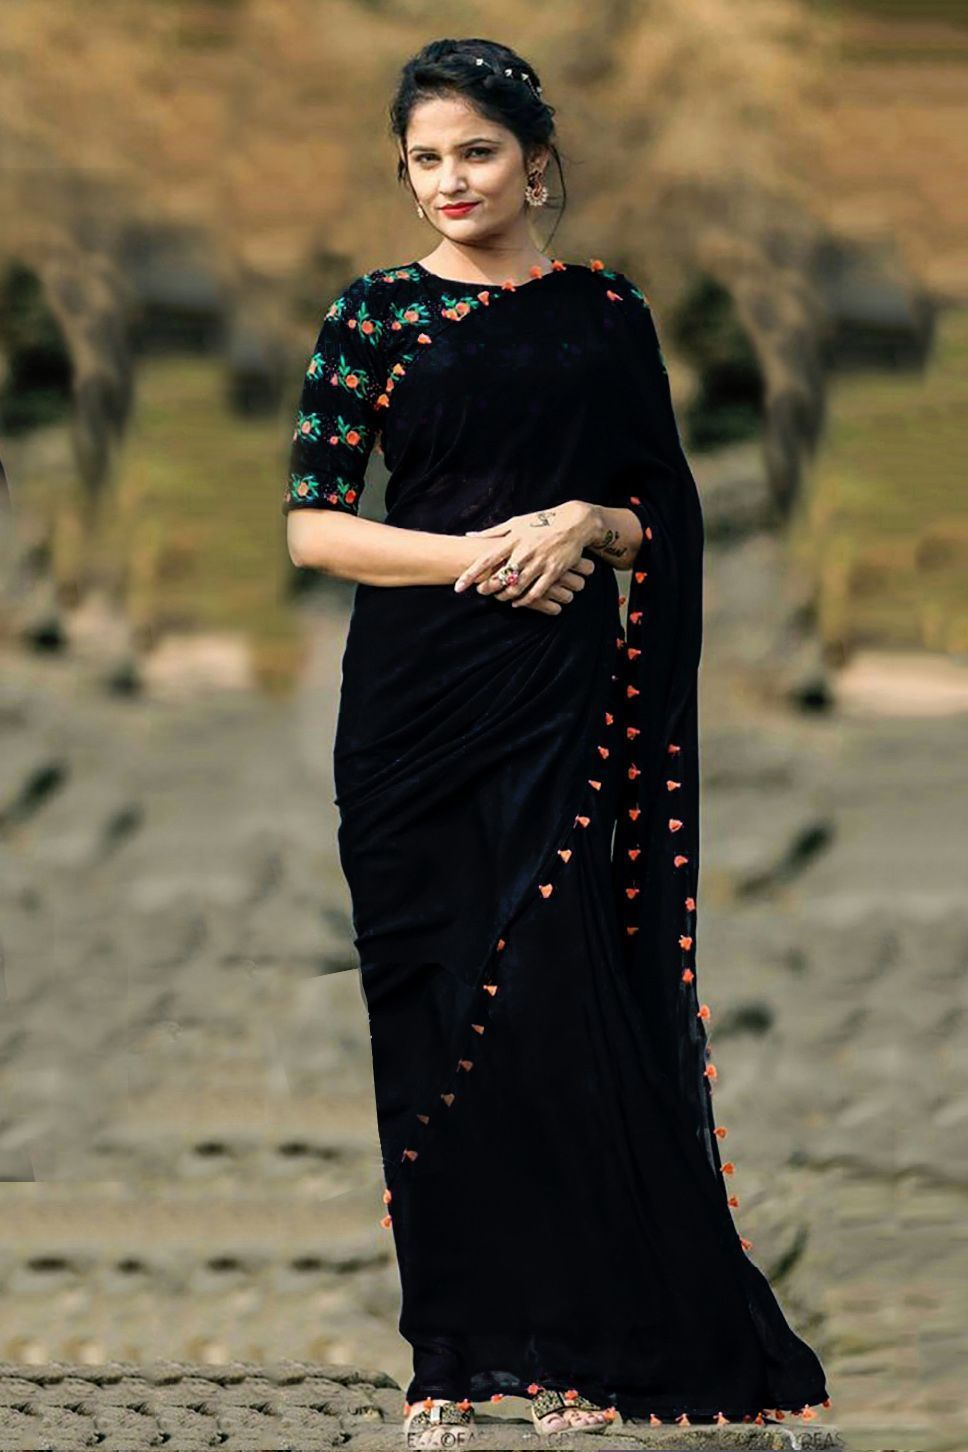 Clothes, Shoes & Accessories Women's Clothing Creative Designer Sarees Pakistani Indian New Bollywood Wedding Party Asian Saris Dress Cheapest Price From Our Site